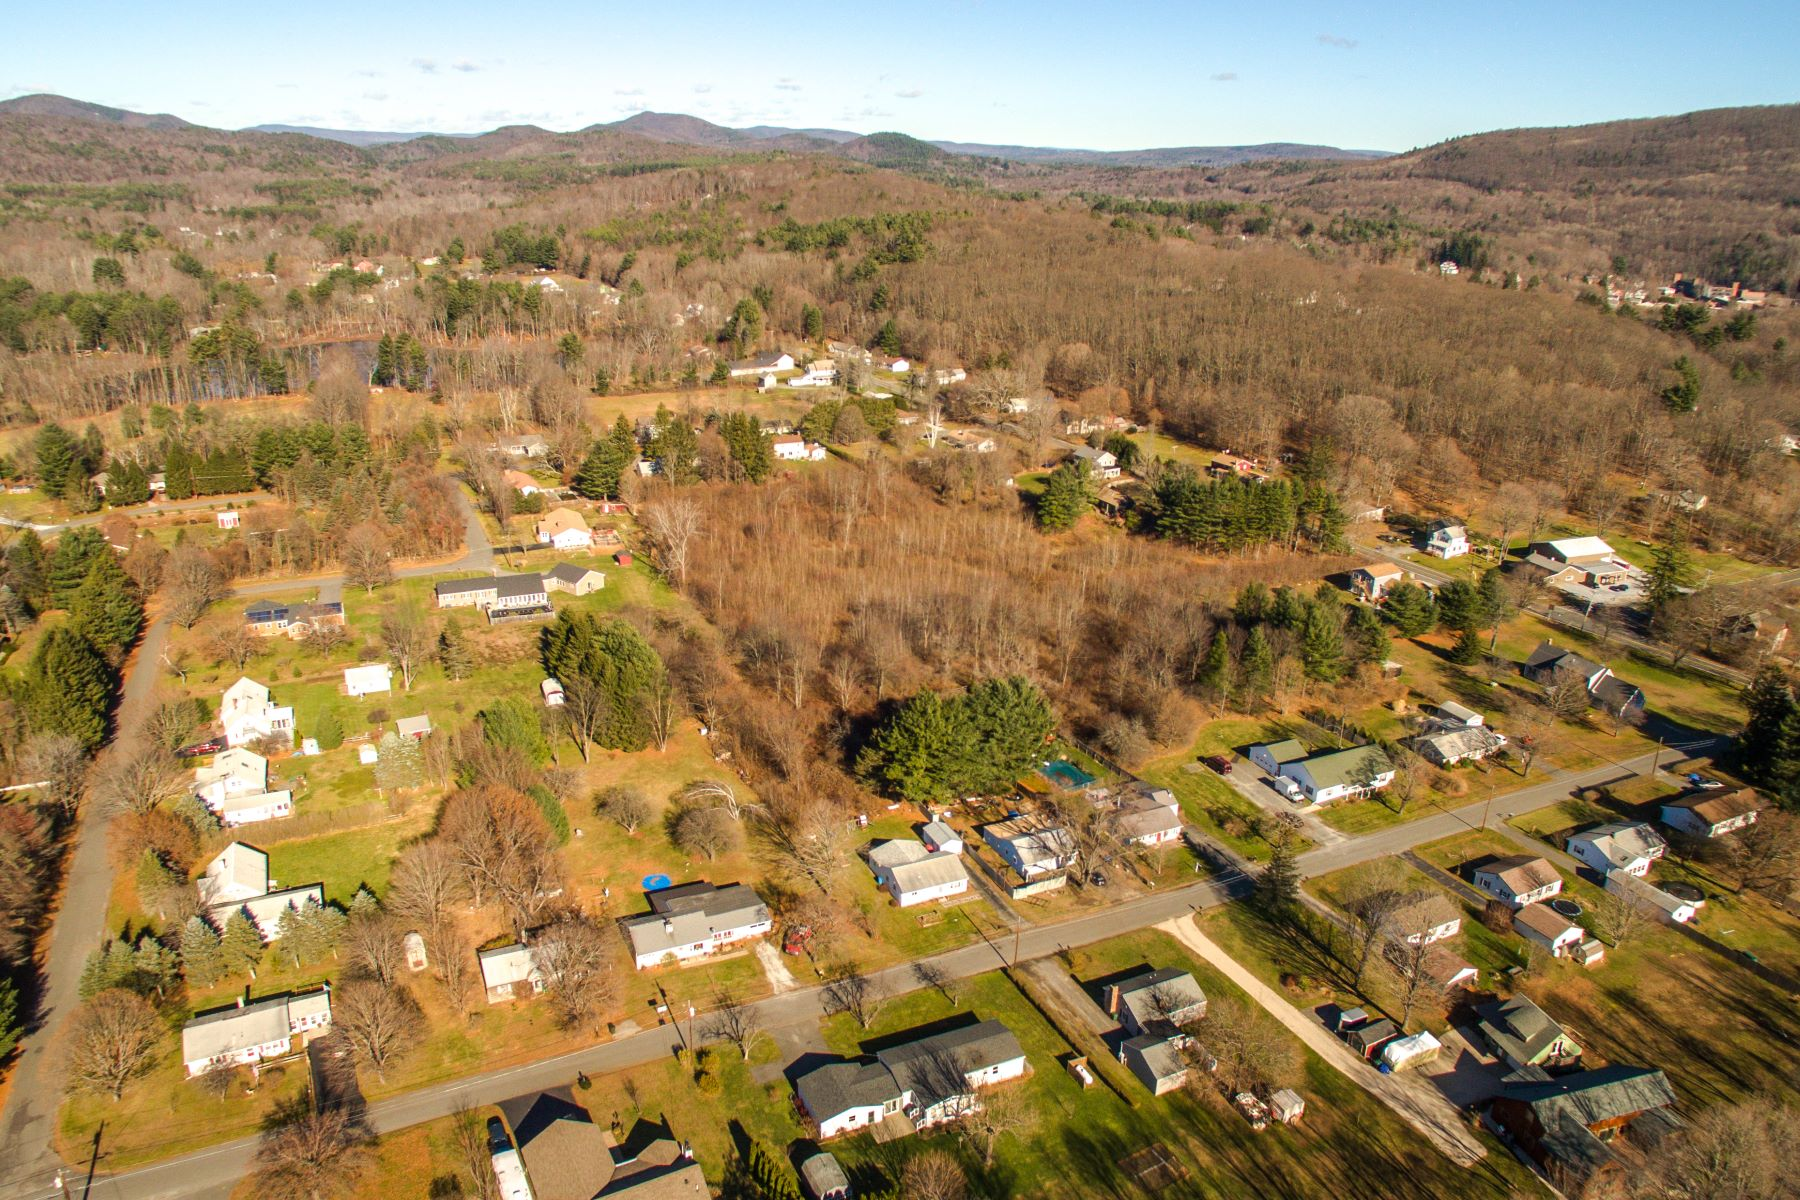 Terreno por un Venta en Unique Residential Development Opportunity 0 North Plain Road Great Barrington, Massachusetts 01230 Estados Unidos